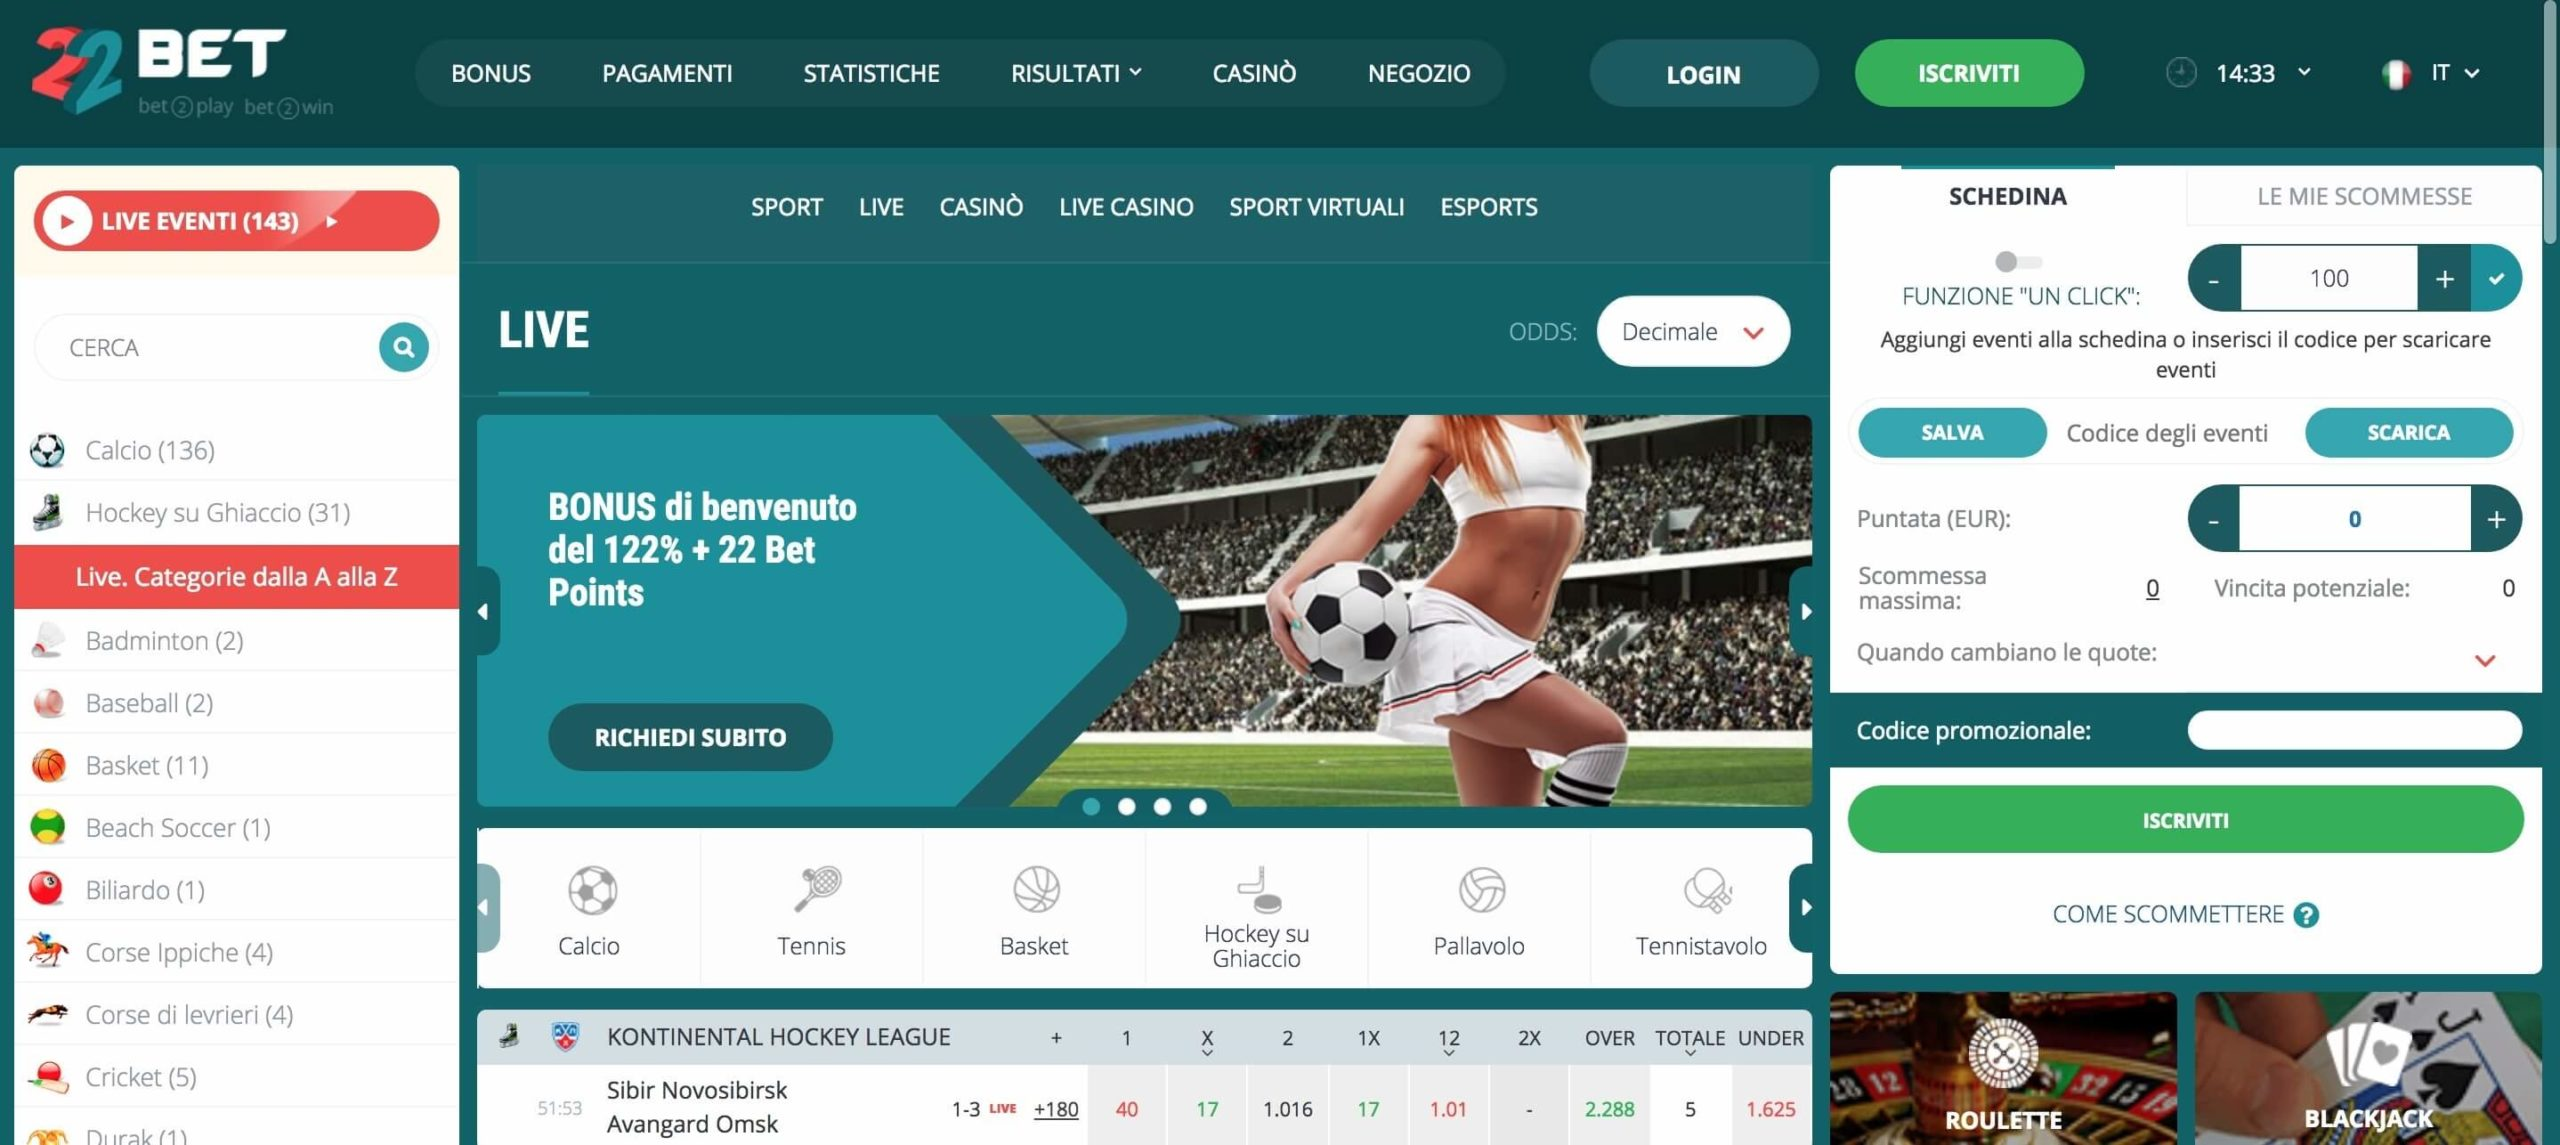 22Bet Scommesse live